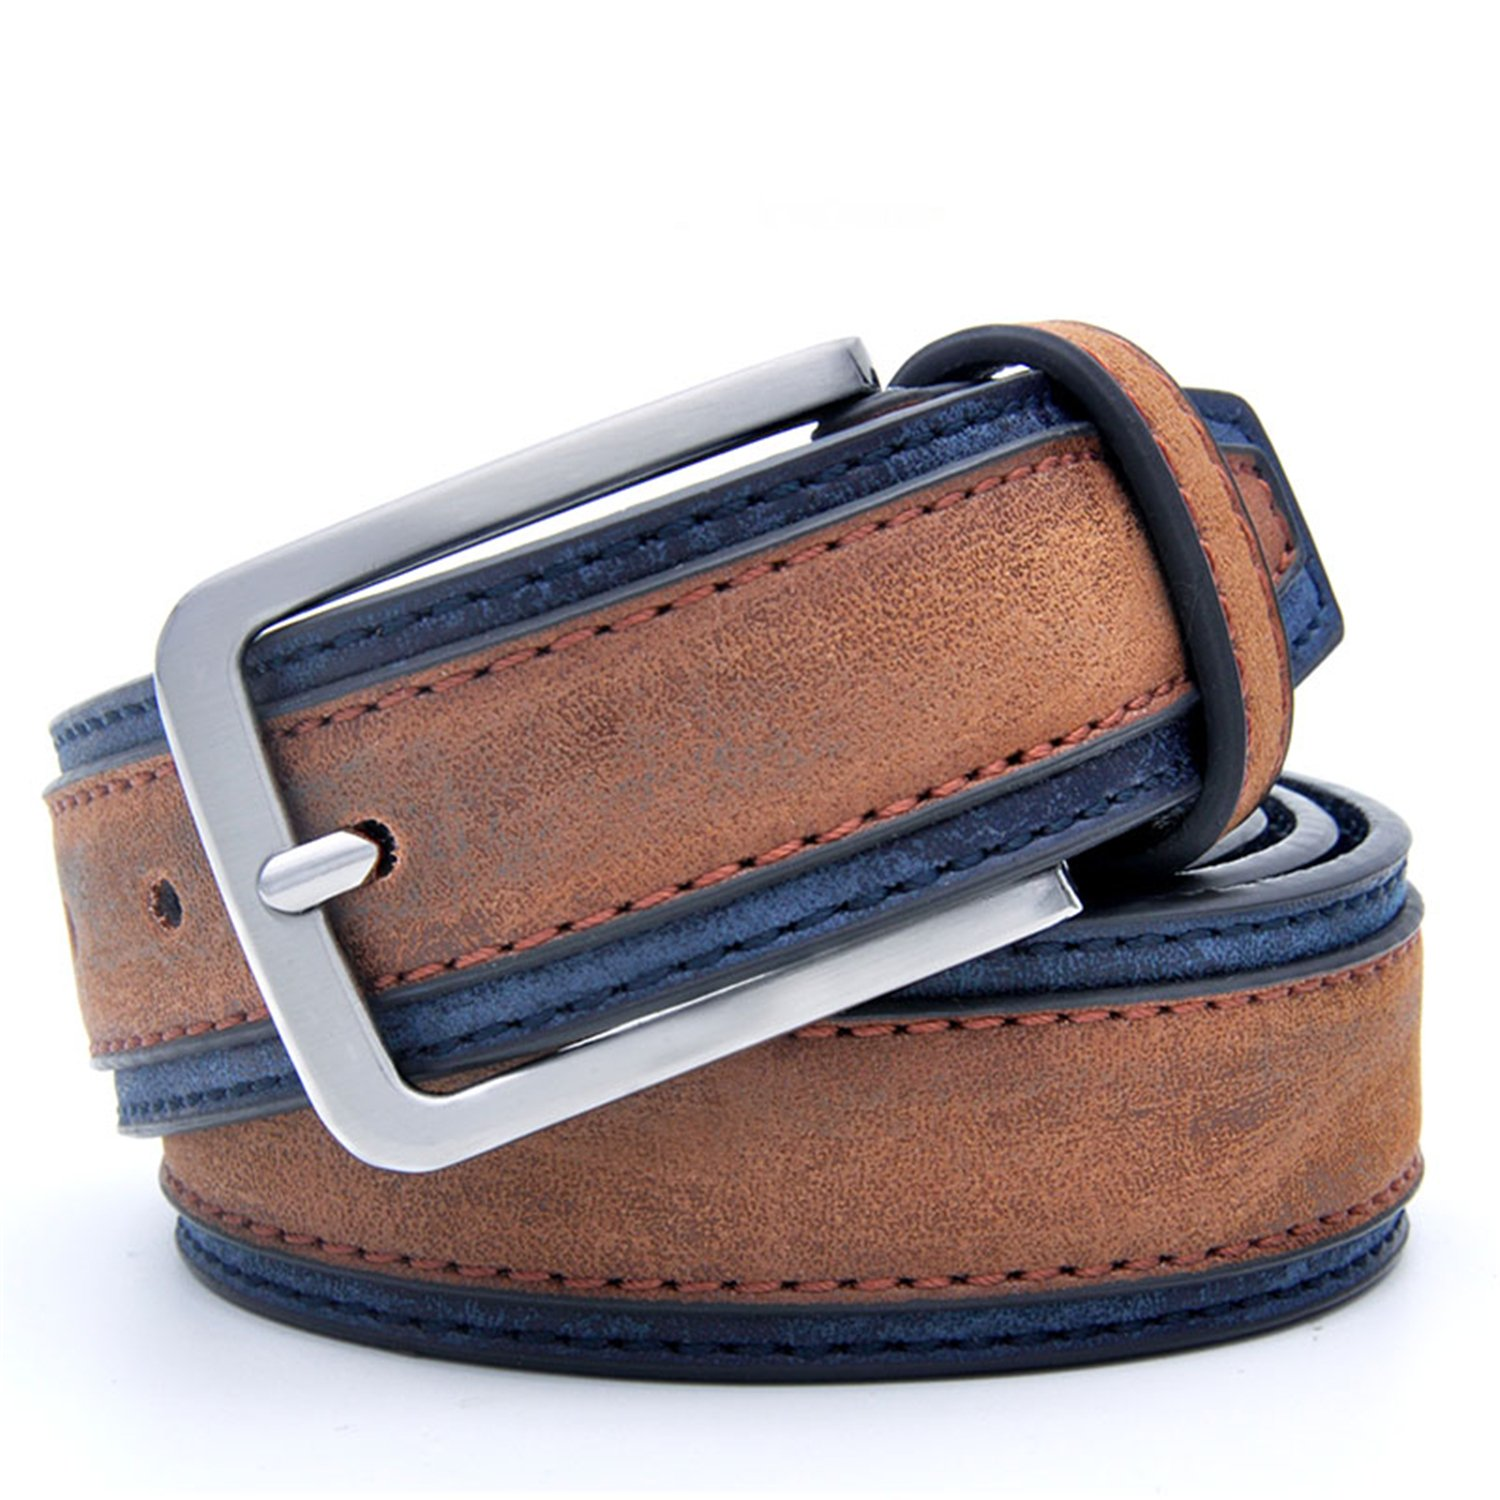 Saneoo Casual Patchwork Men Belts Designers Luxury Men Fashion Belt Trends Trousers With Three Color To Choose